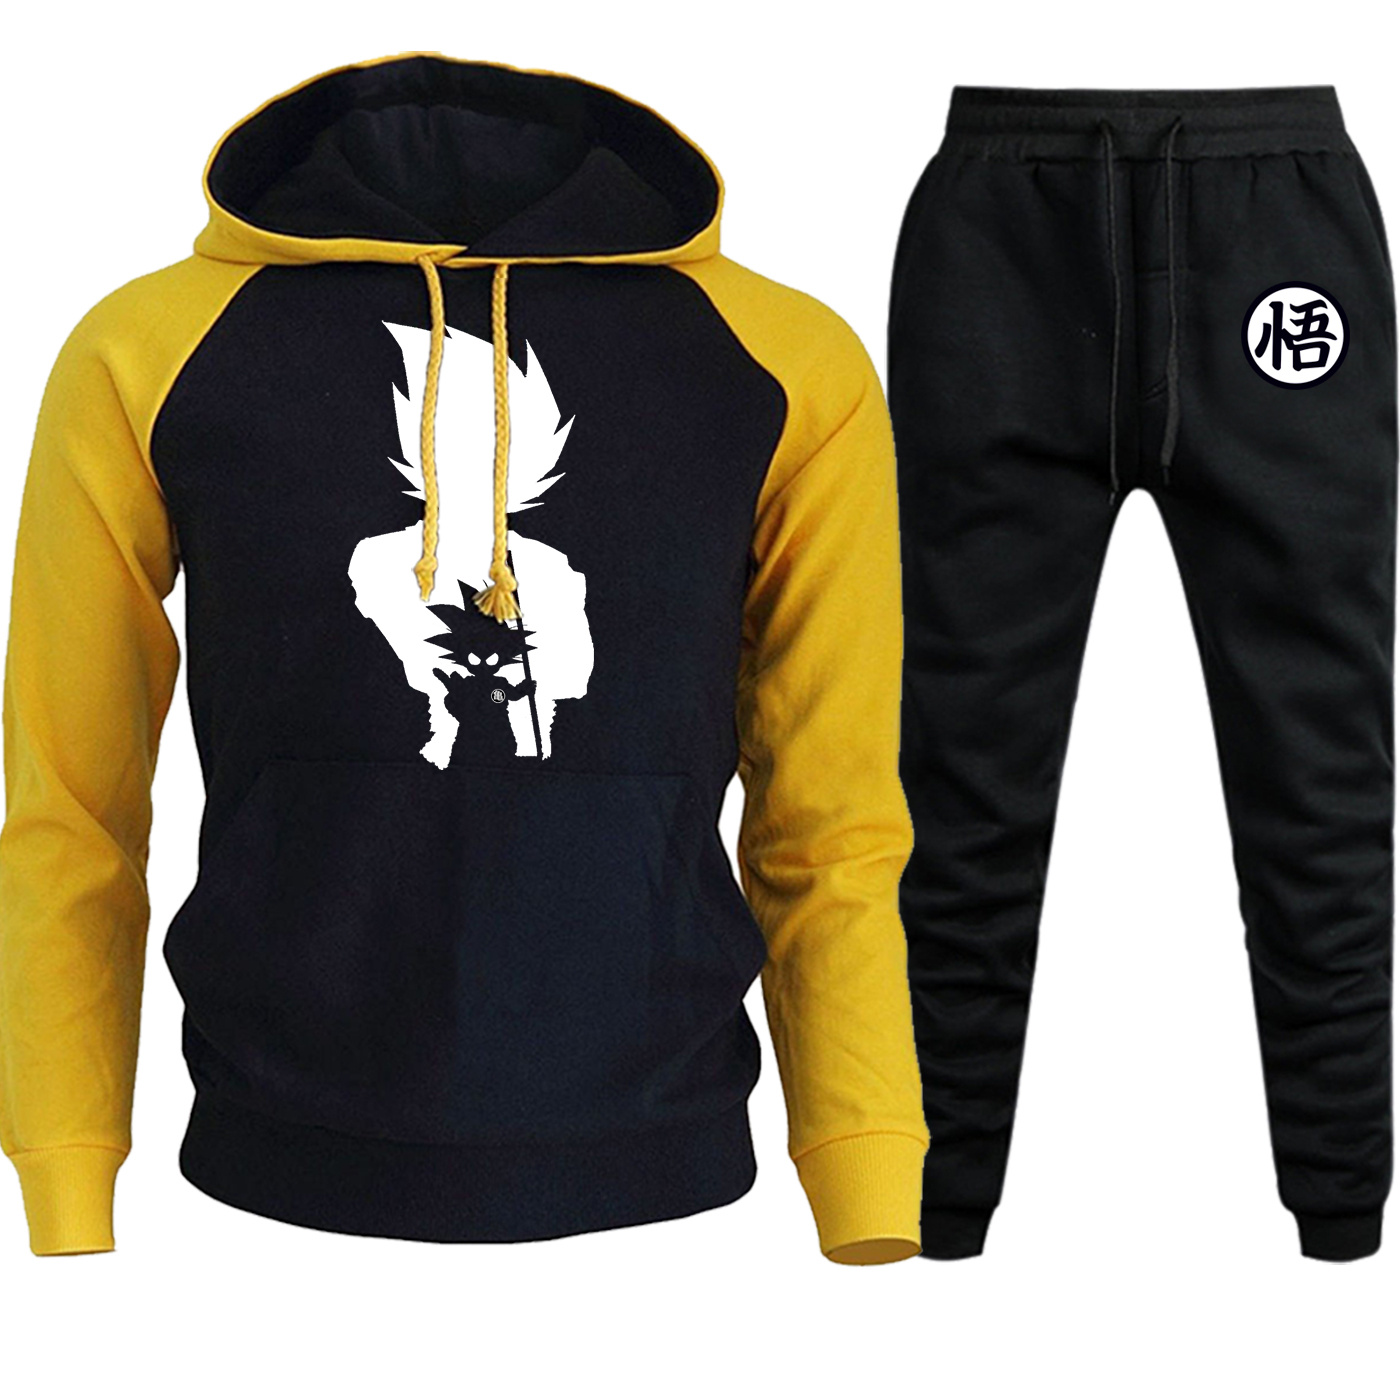 Dragon Ball New Autumn Winter Hooded Mens Raglan Sweatshirts Cartoon Print Suit Male Hoodie Casual Pullover+Pants 2 Piece Set